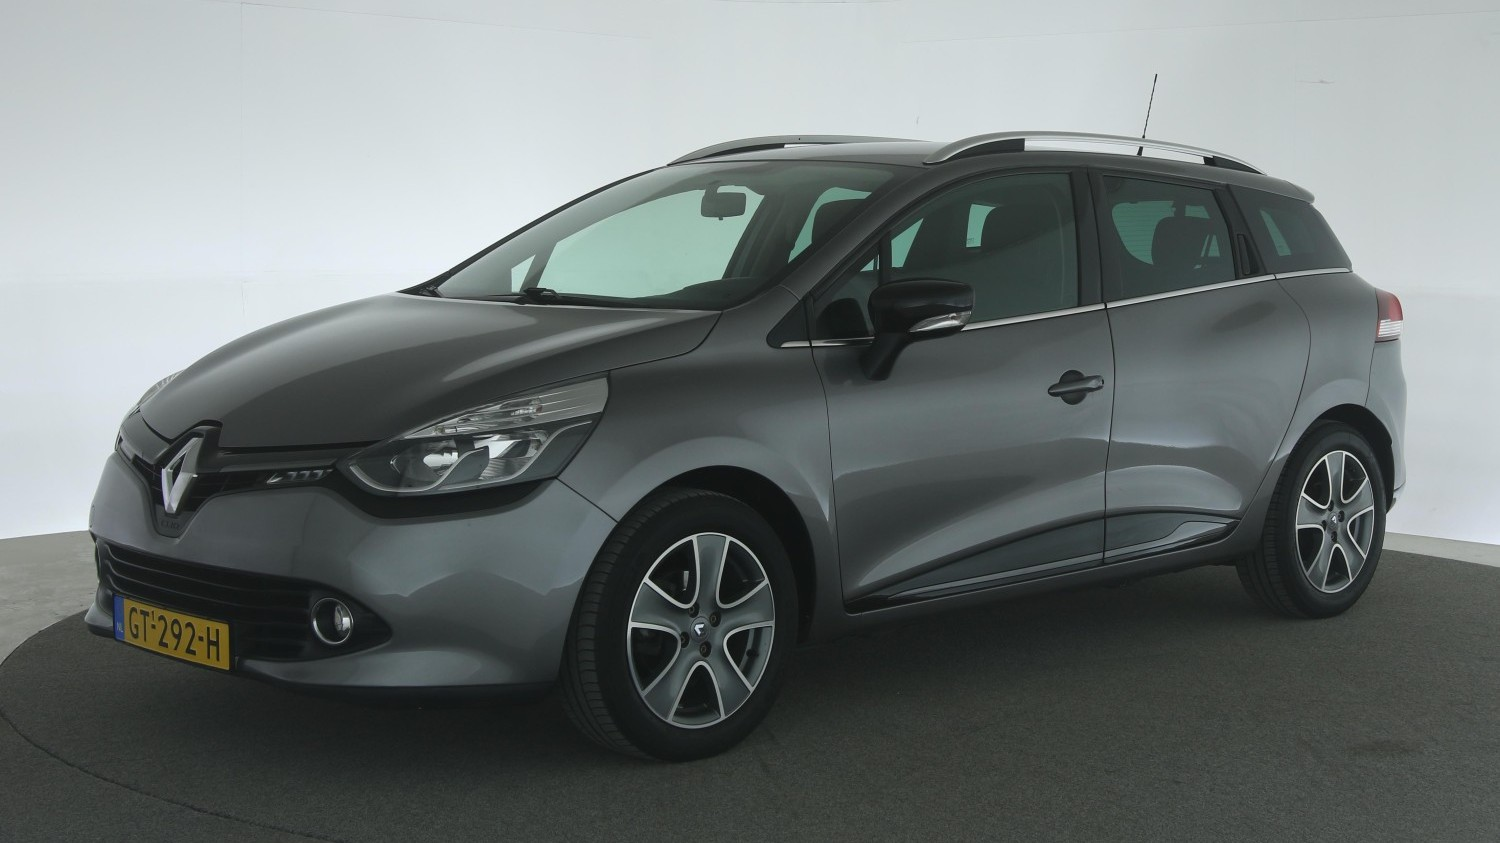 Renault Clio Station 2015 GT-292-H 1